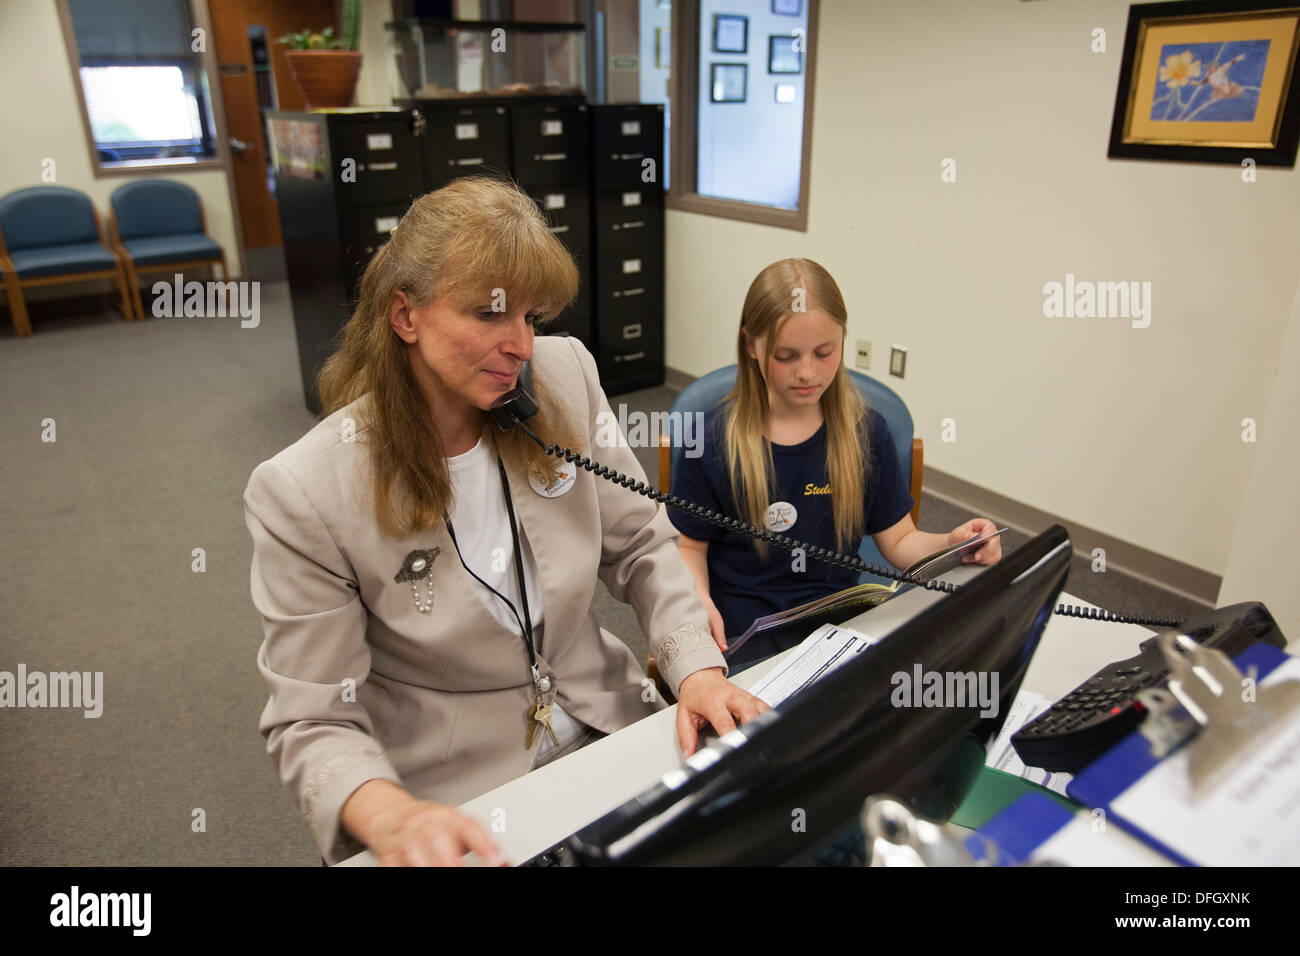 School Secretary at Work with Daughter - Stock Image